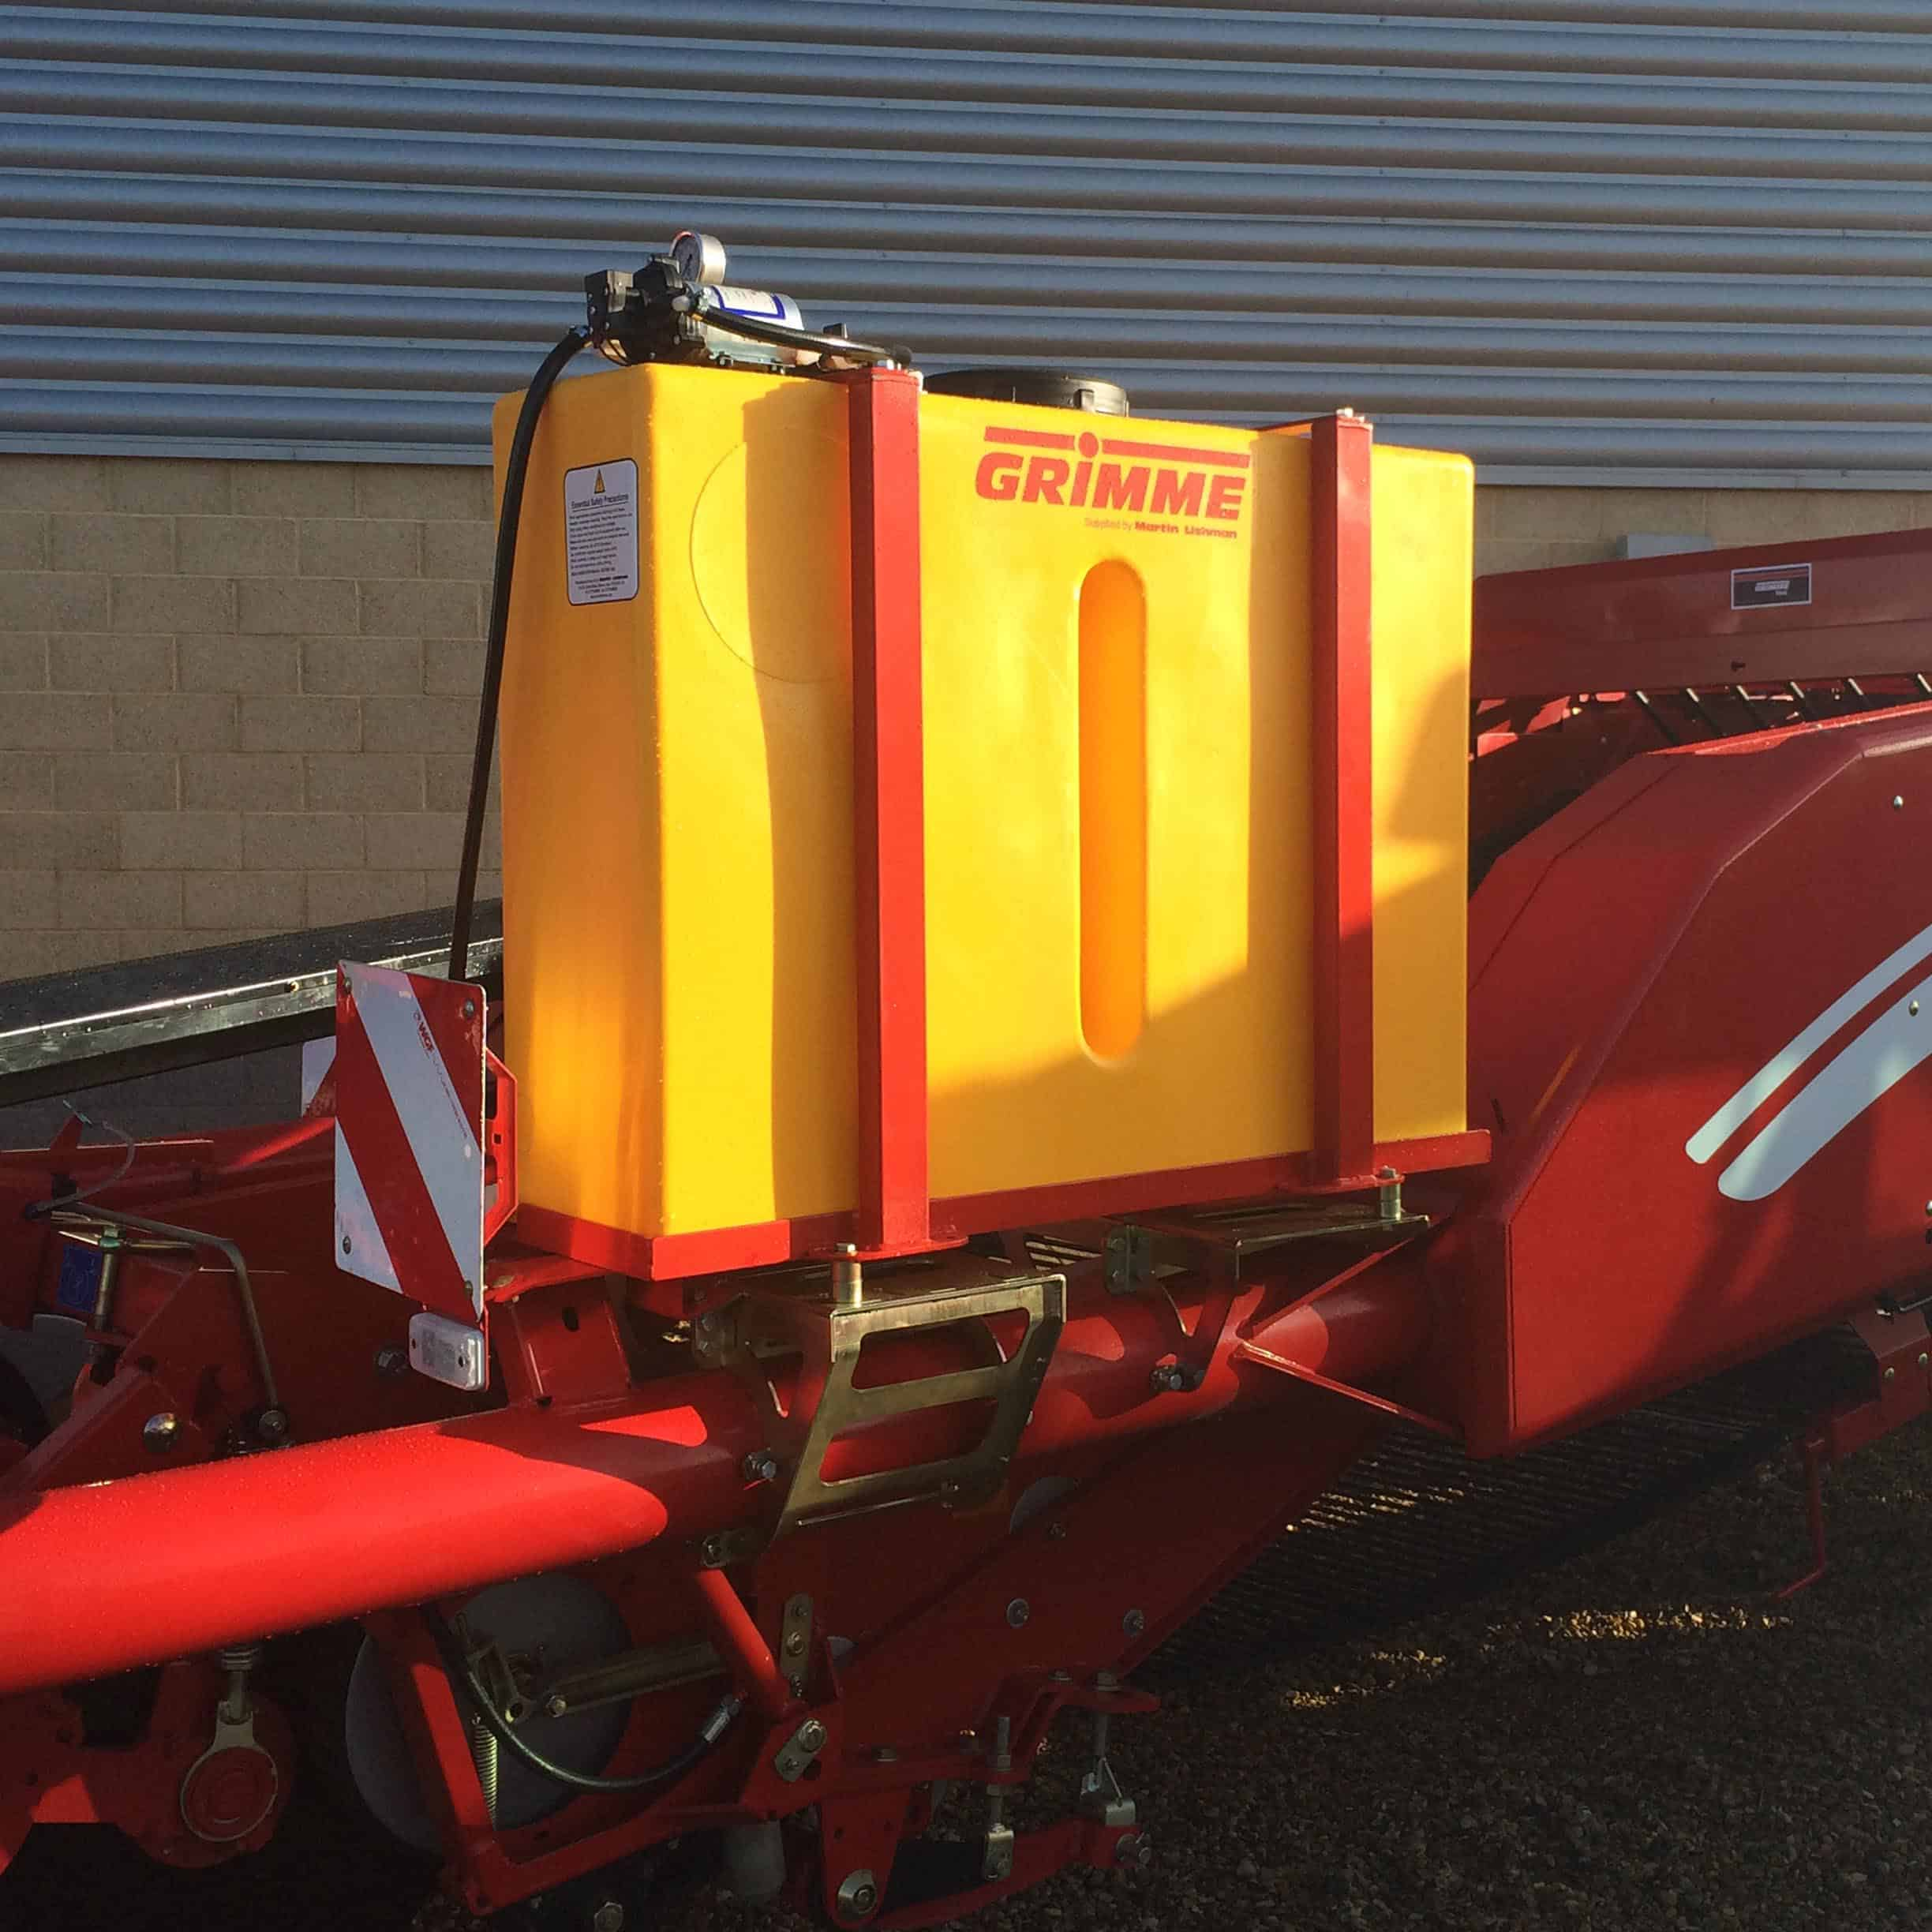 potato harvester mister mounted on grimme machine